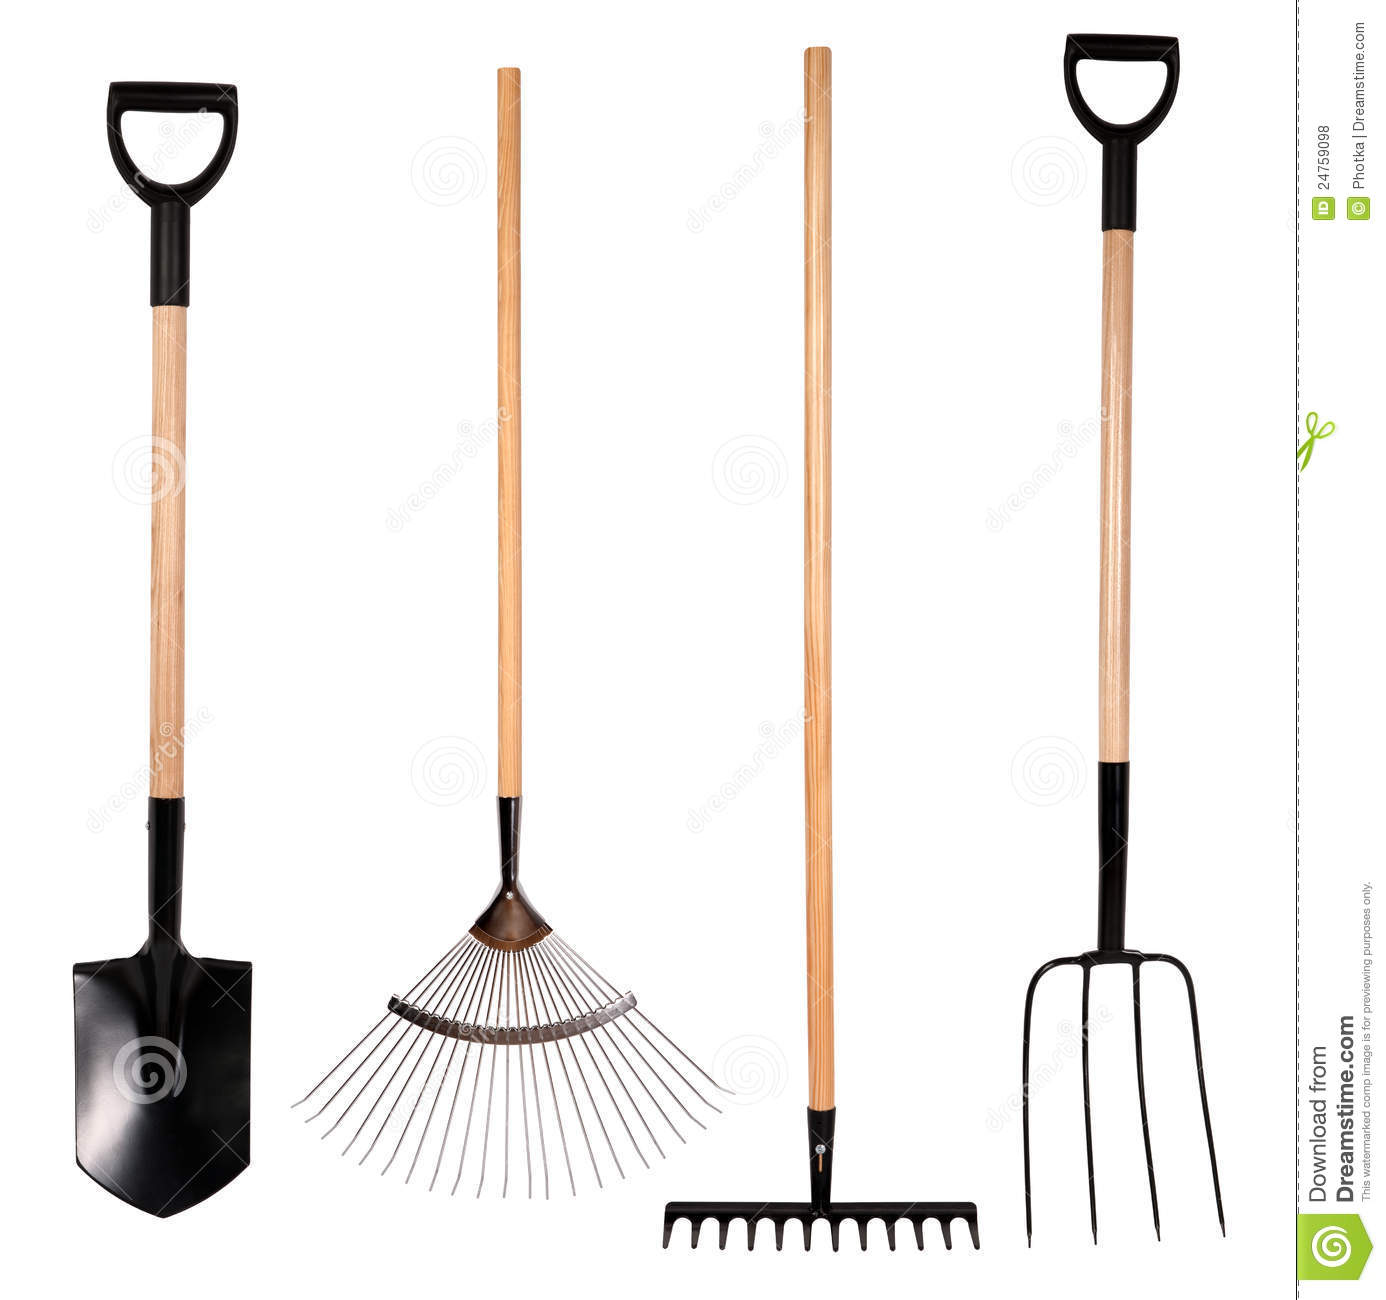 Gardening tools spade fork and rake stock photo image for Garden equipment tools